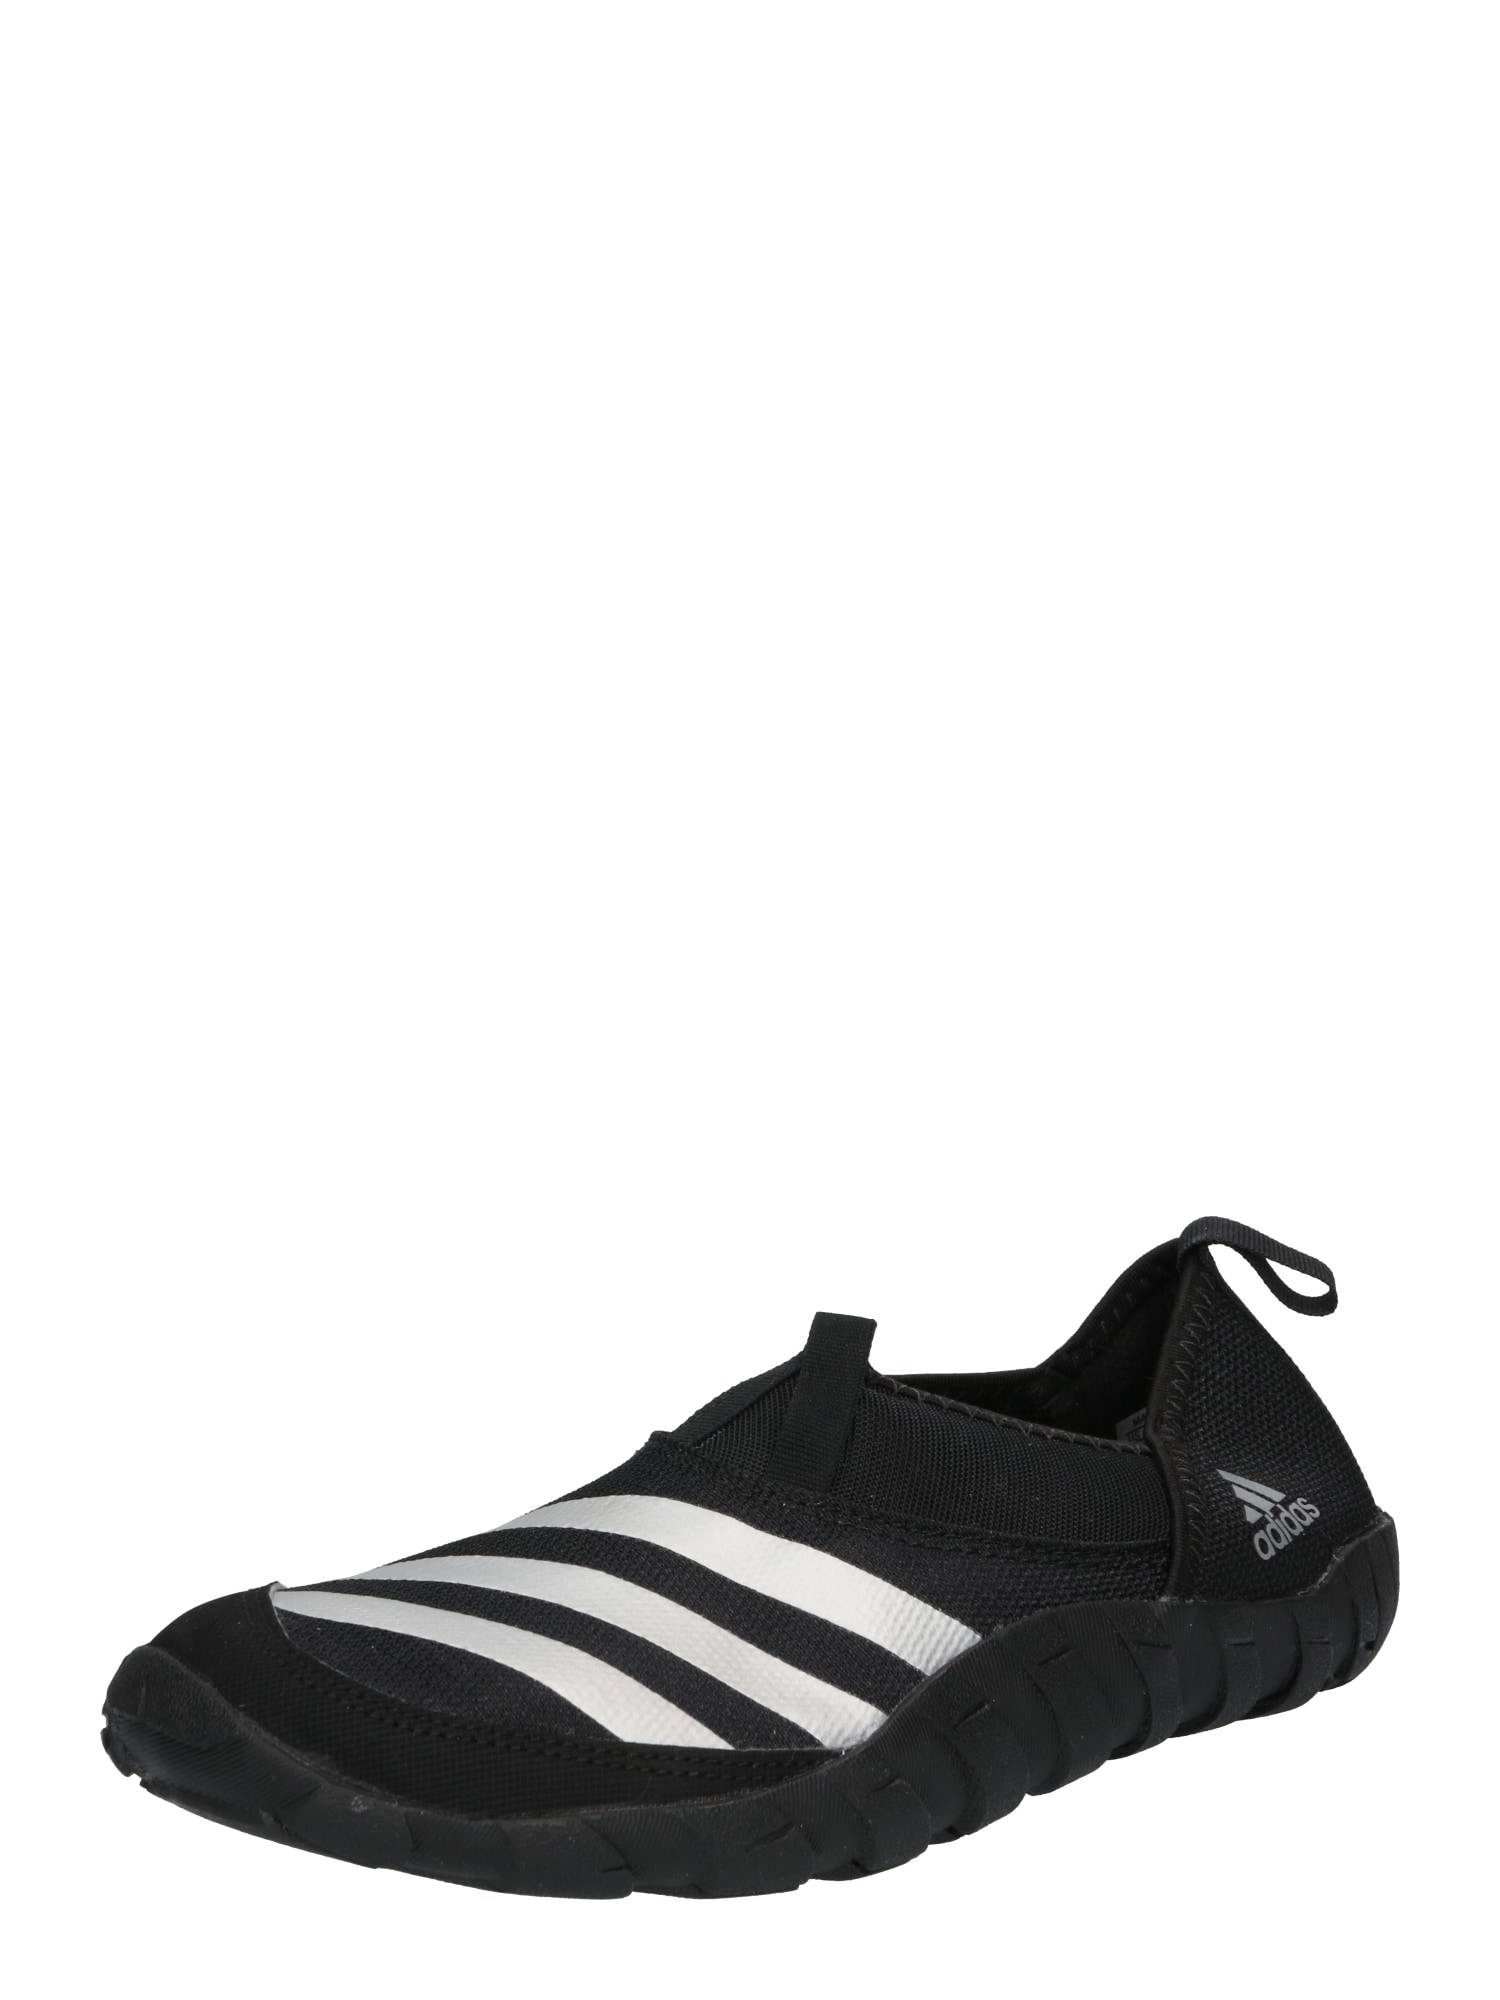 ADIDAS PERFORMANCE Sandalo Nero